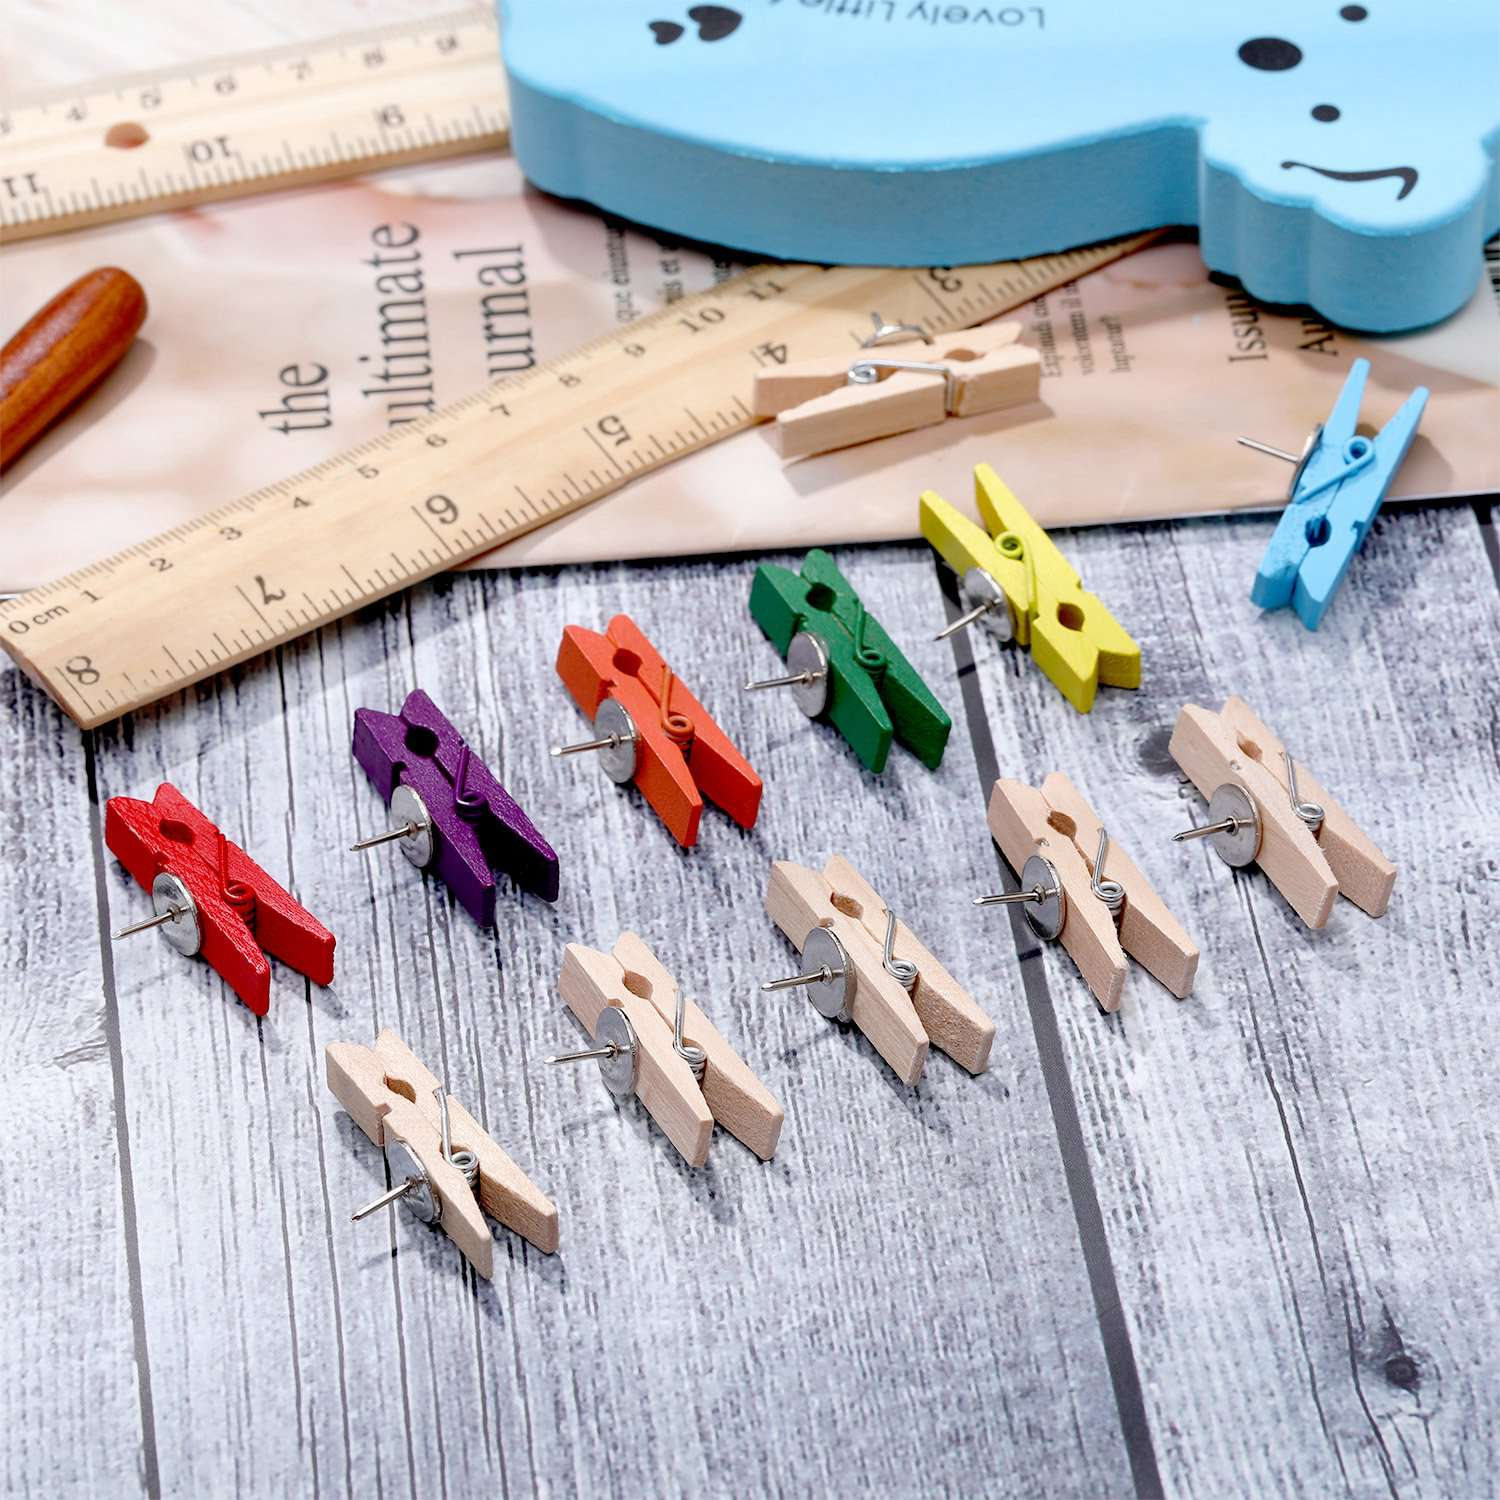 Push Pins With Wooden Clips Paper Clips Push Pins Tacks Thumbtacks For Photos Craft Projects Bulletin Boards Cork Boards (100